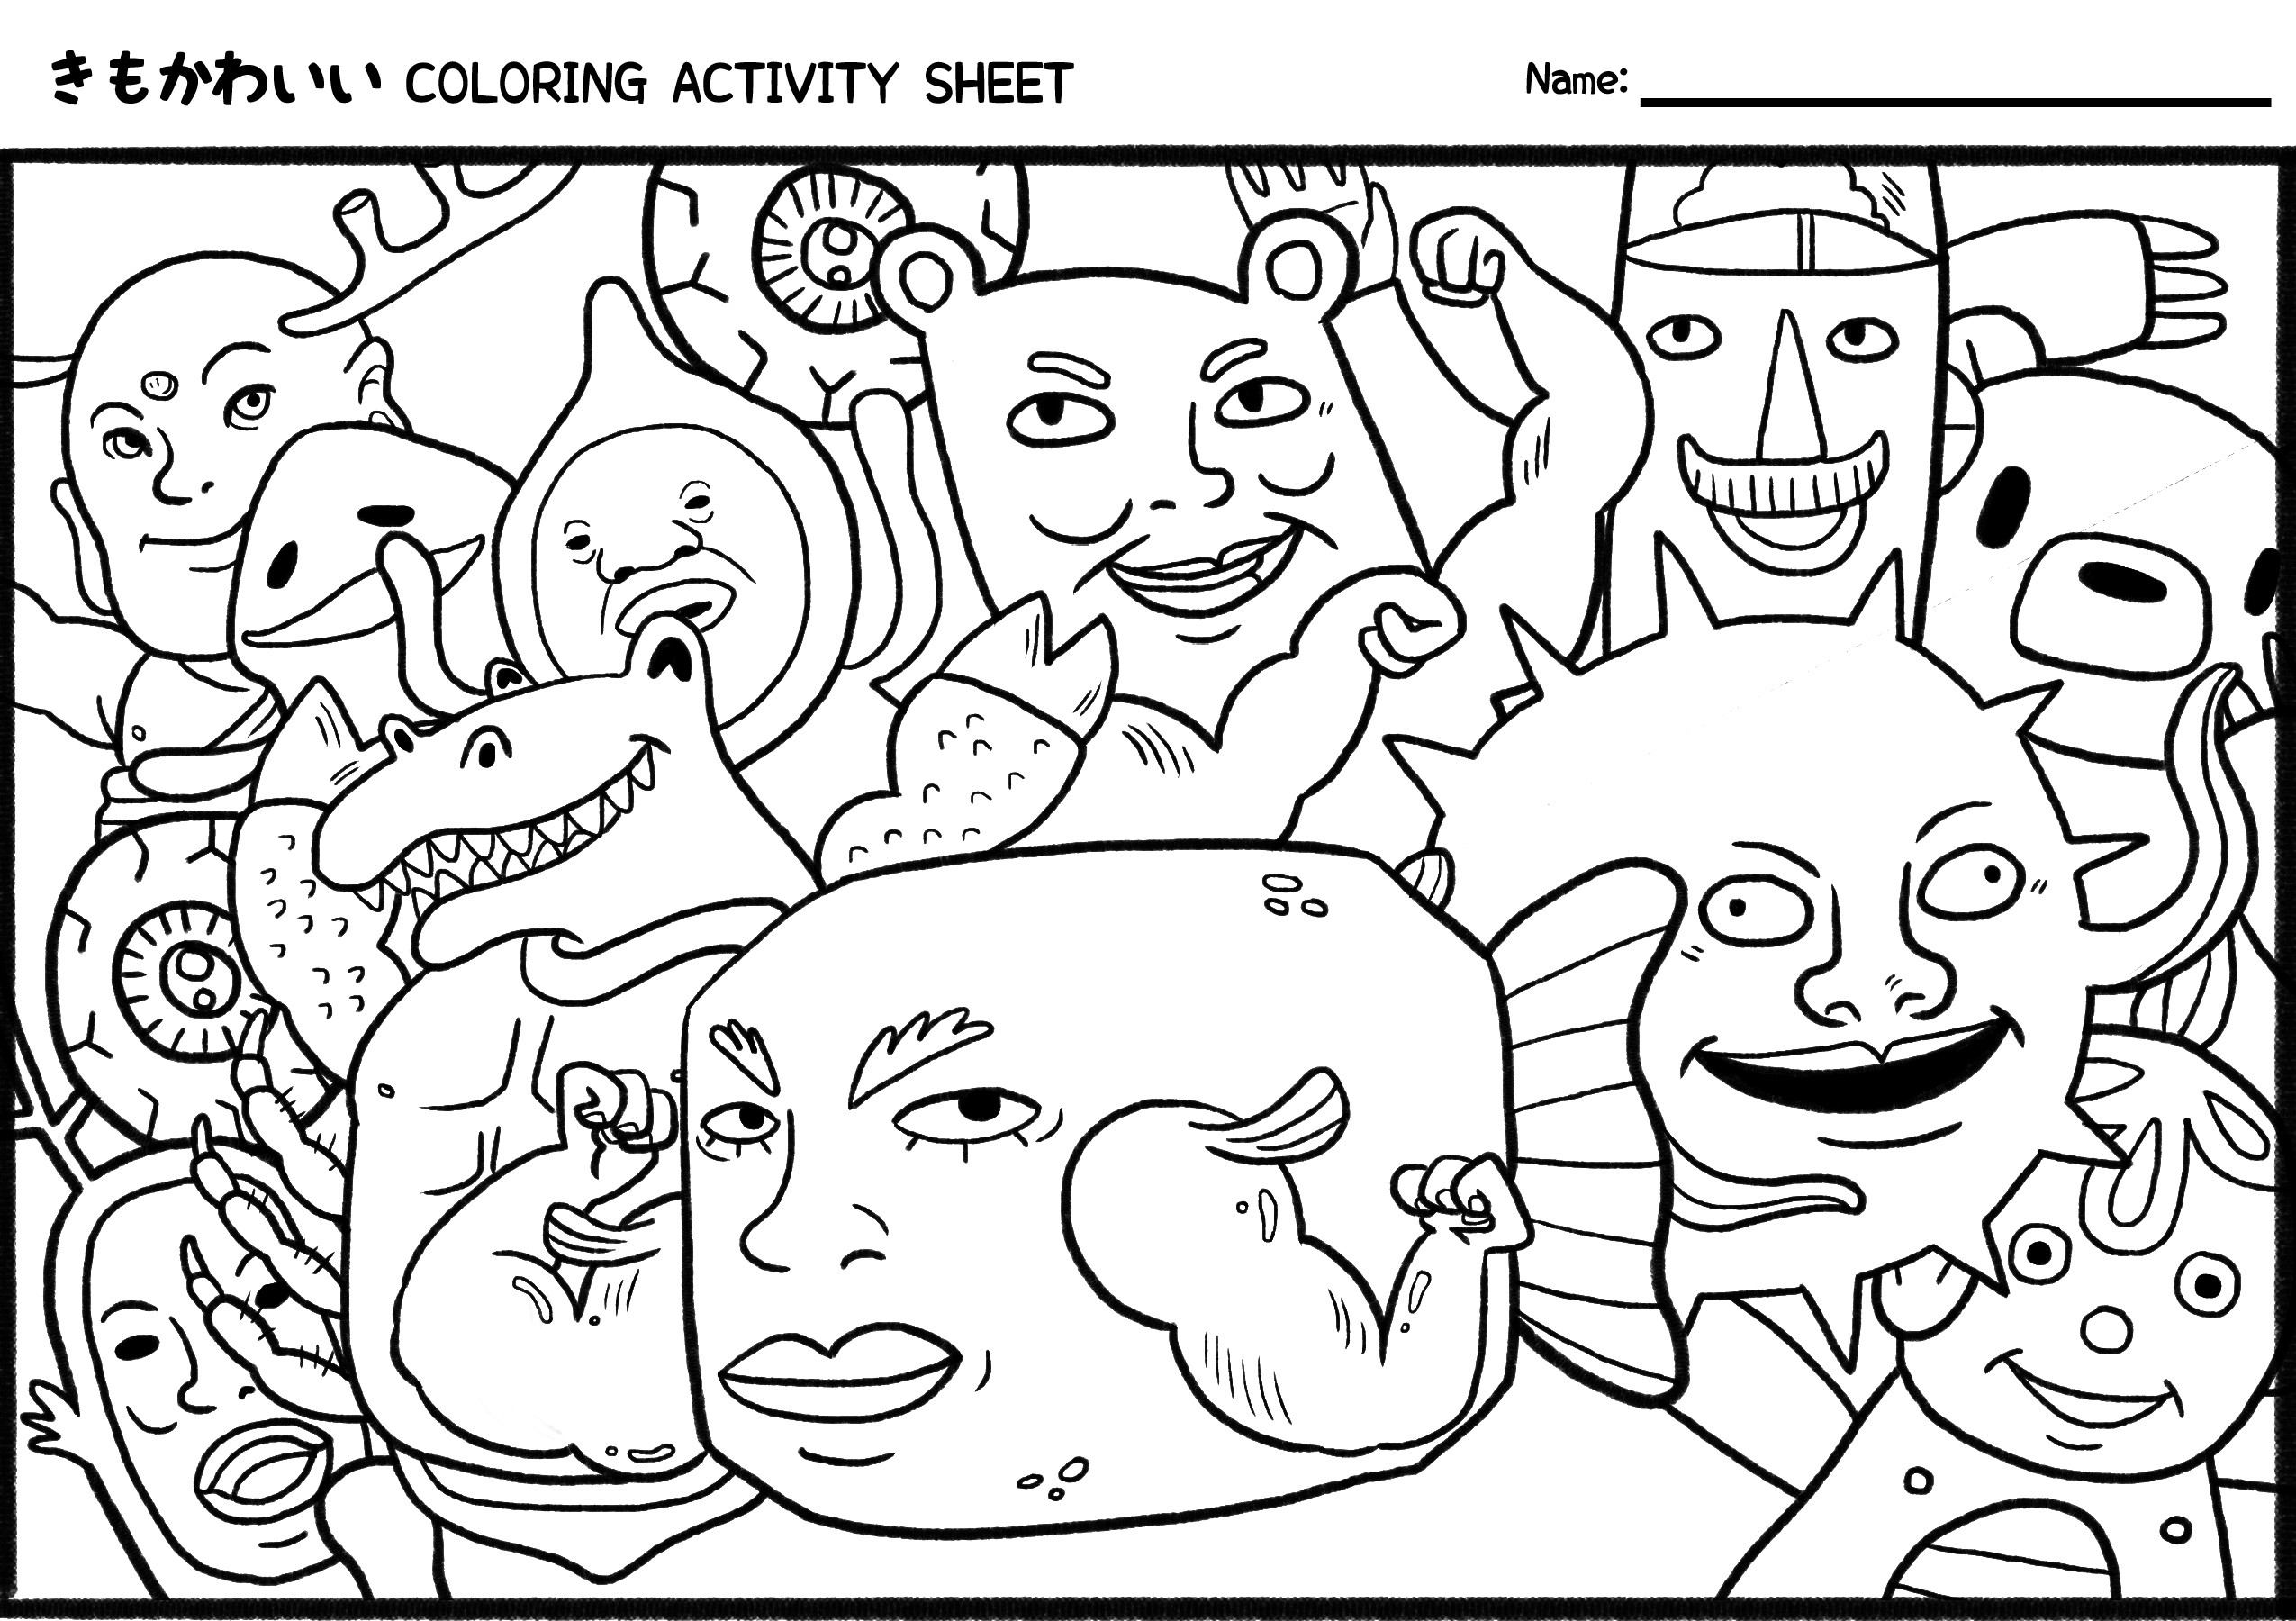 horse coloring pages printable Collection-Printable Horse Coloring Pages 1-f